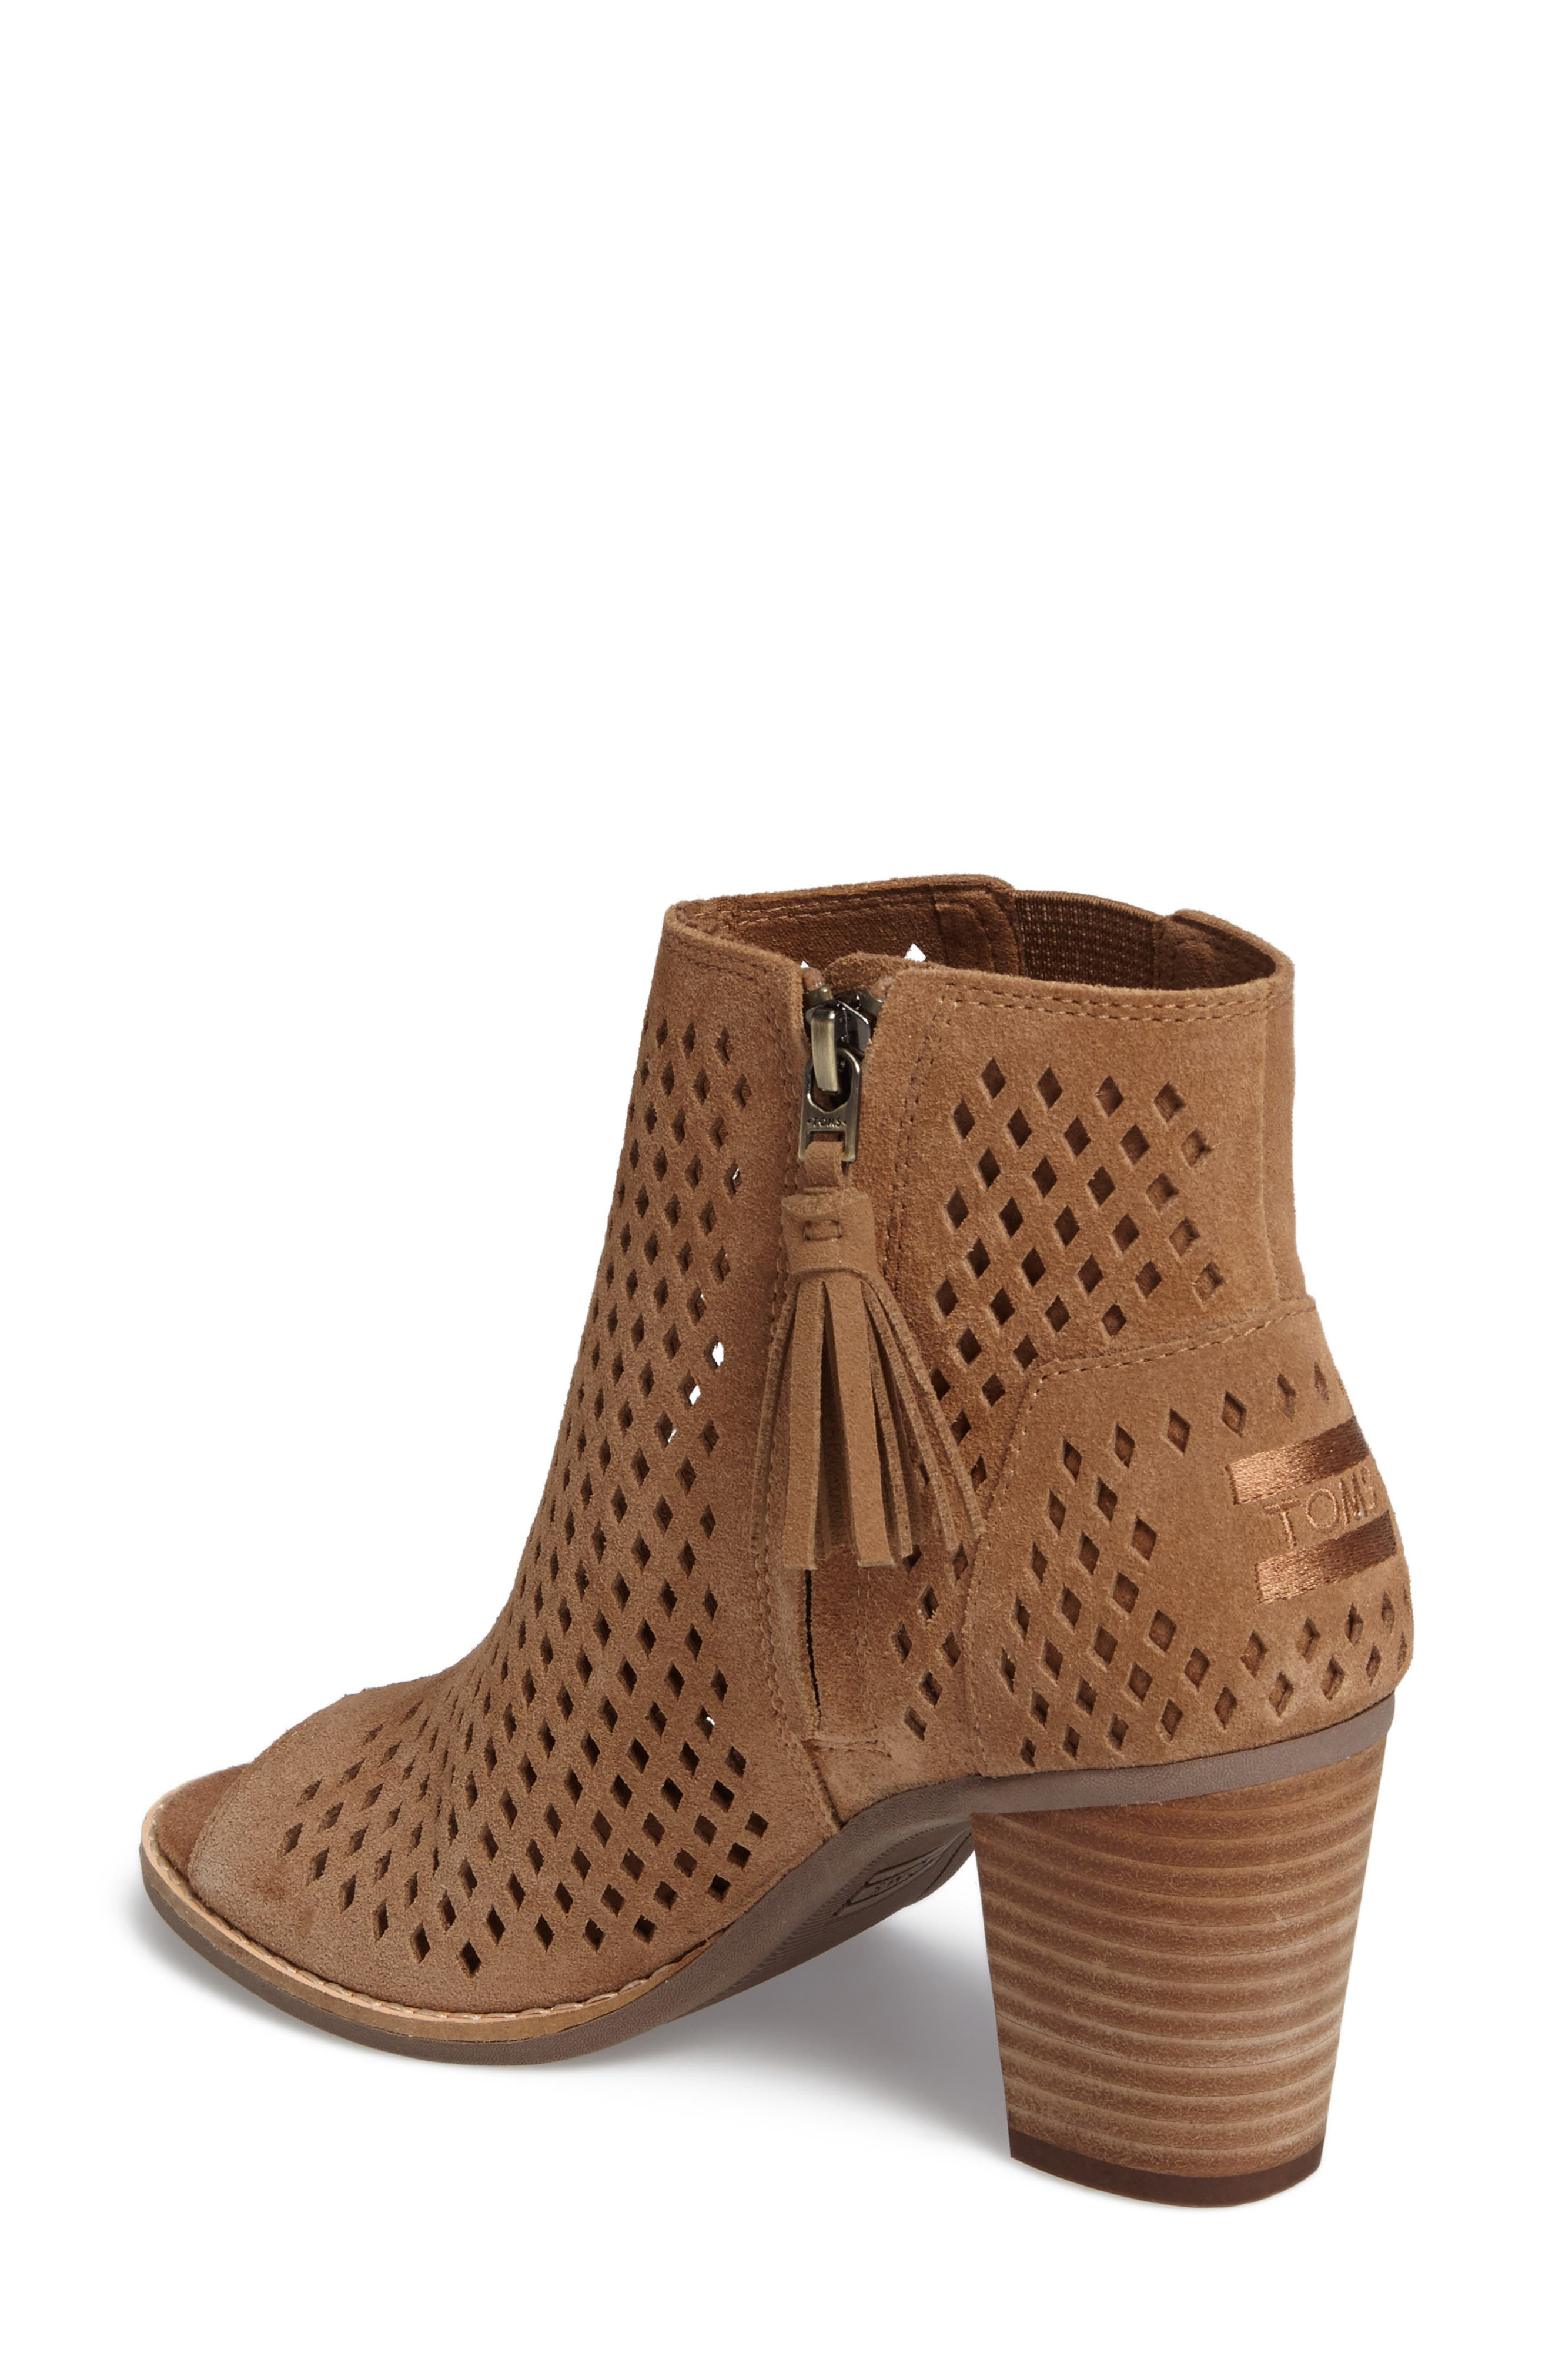 Majorca Peep Toe Bootie,                             Alternate thumbnail 3, color,                             Toffee Suede